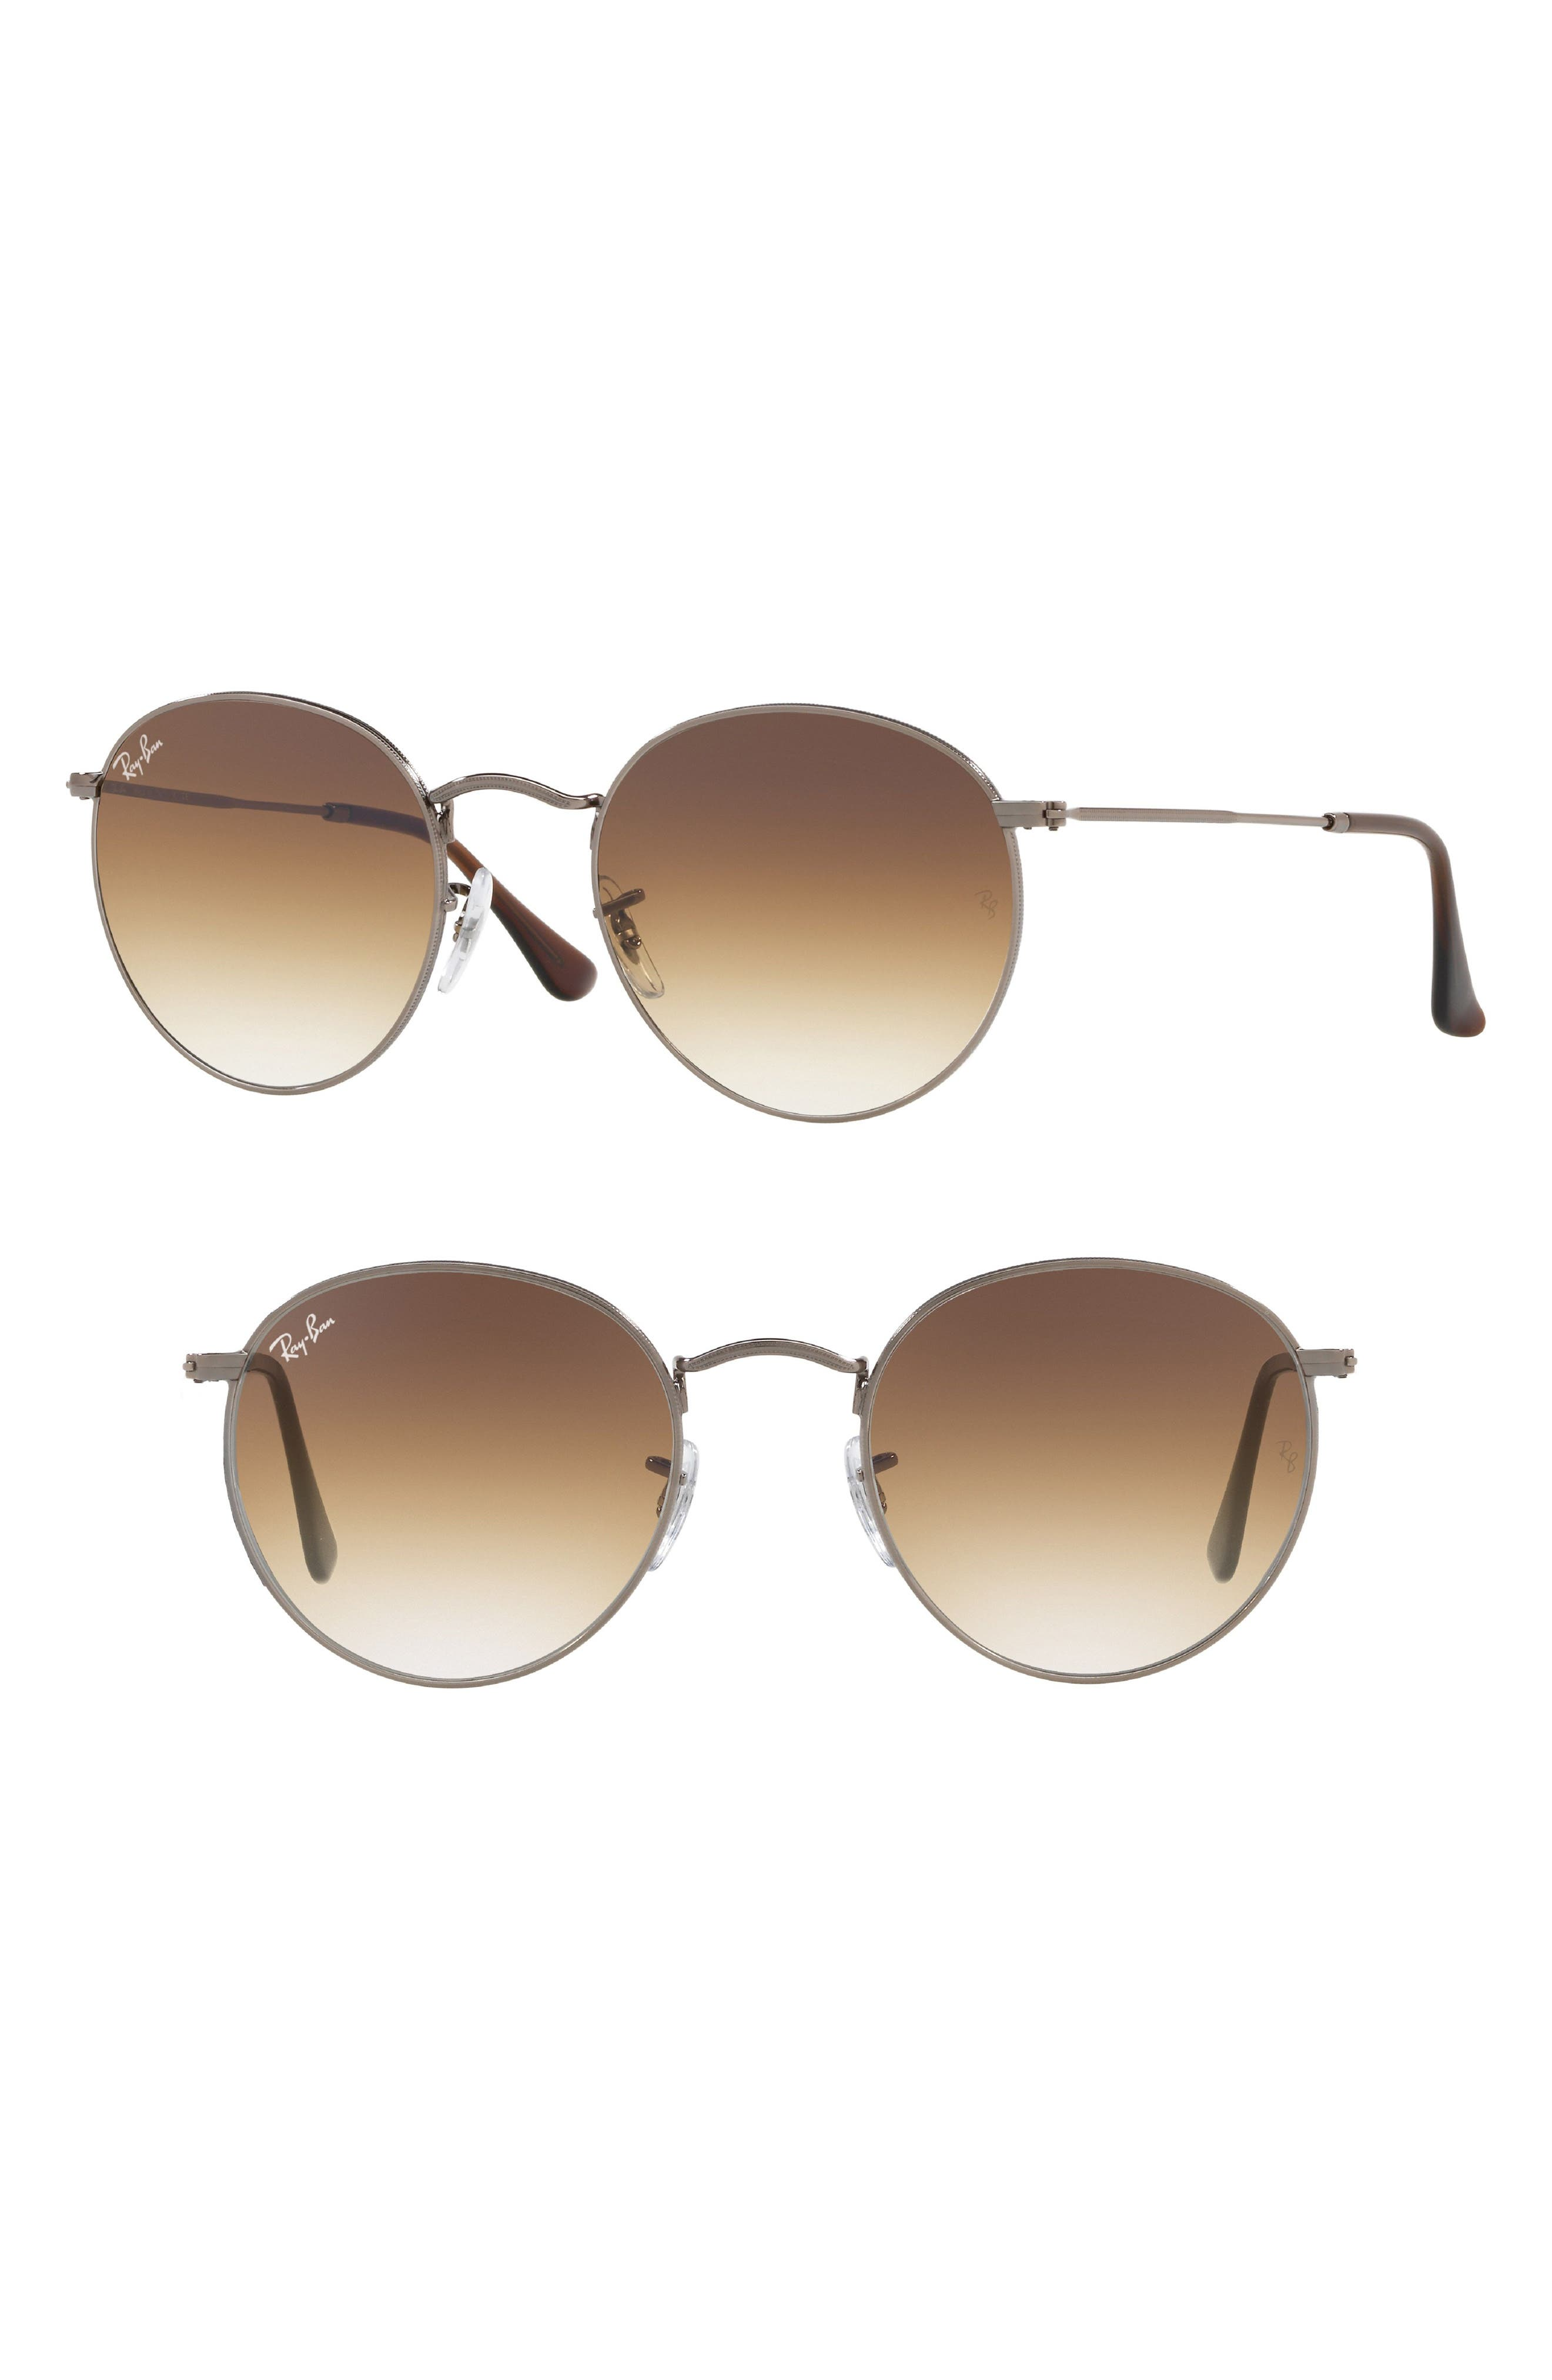 53mm Round Retro Sunglasses,                             Main thumbnail 1, color,                             062